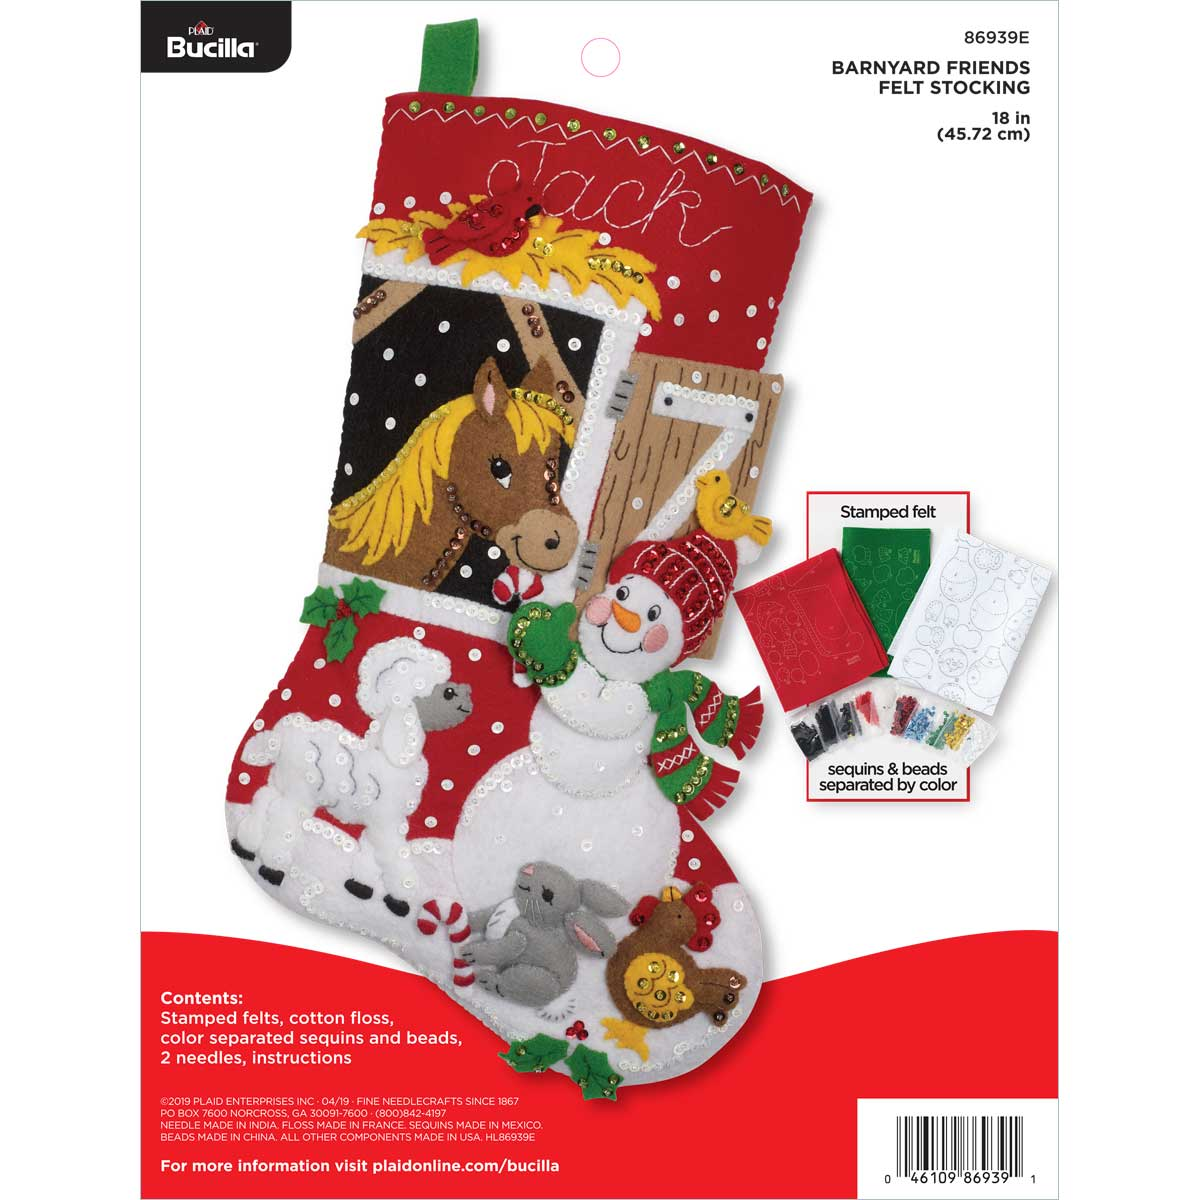 Bucilla ® Seasonal - Felt - Stocking Kits - Barnyard Friends